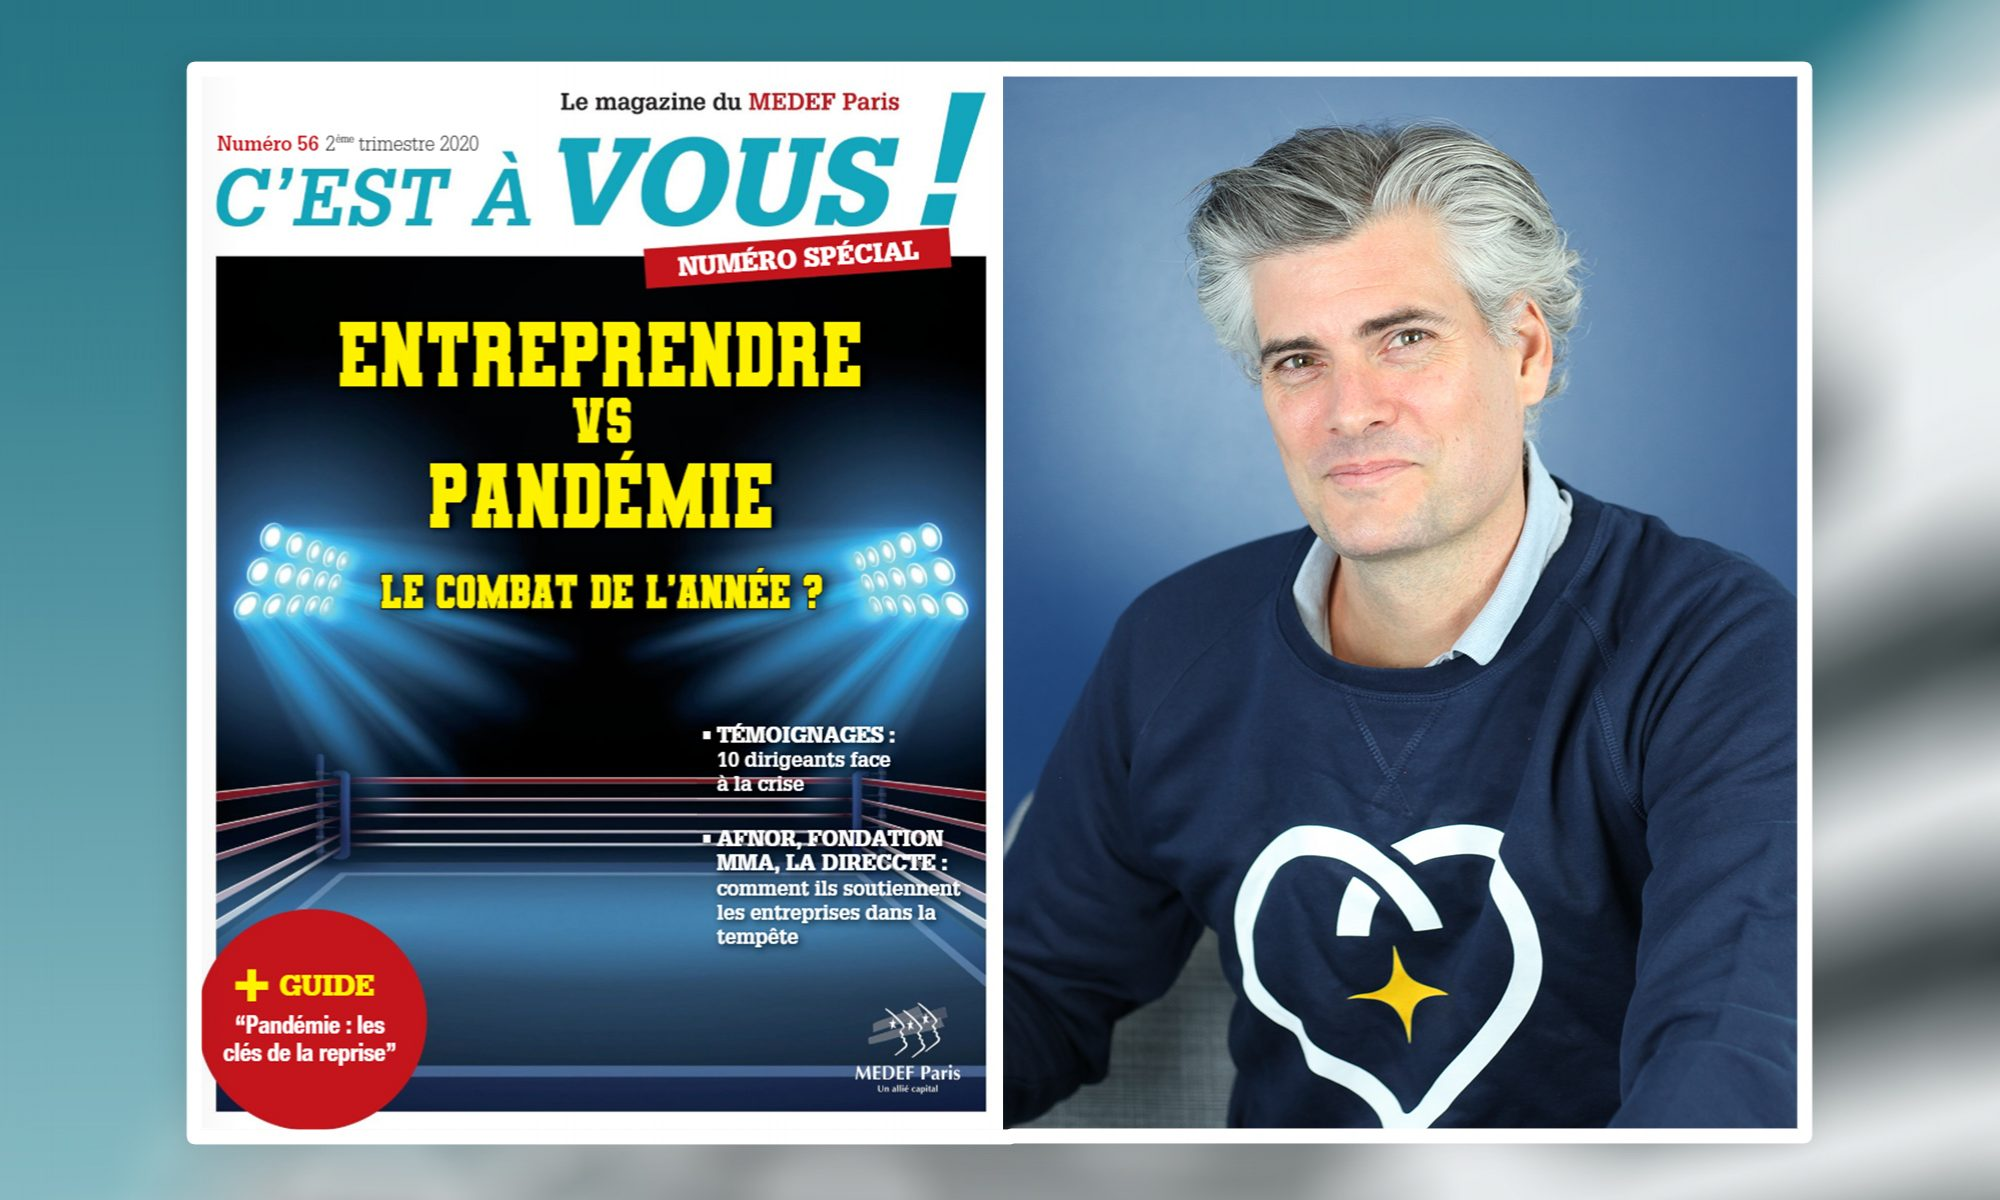 Interview de Florian Reinaud - Concilio - Confinement - Covid-19 - FR MEDEF PARIS MAGAZINE